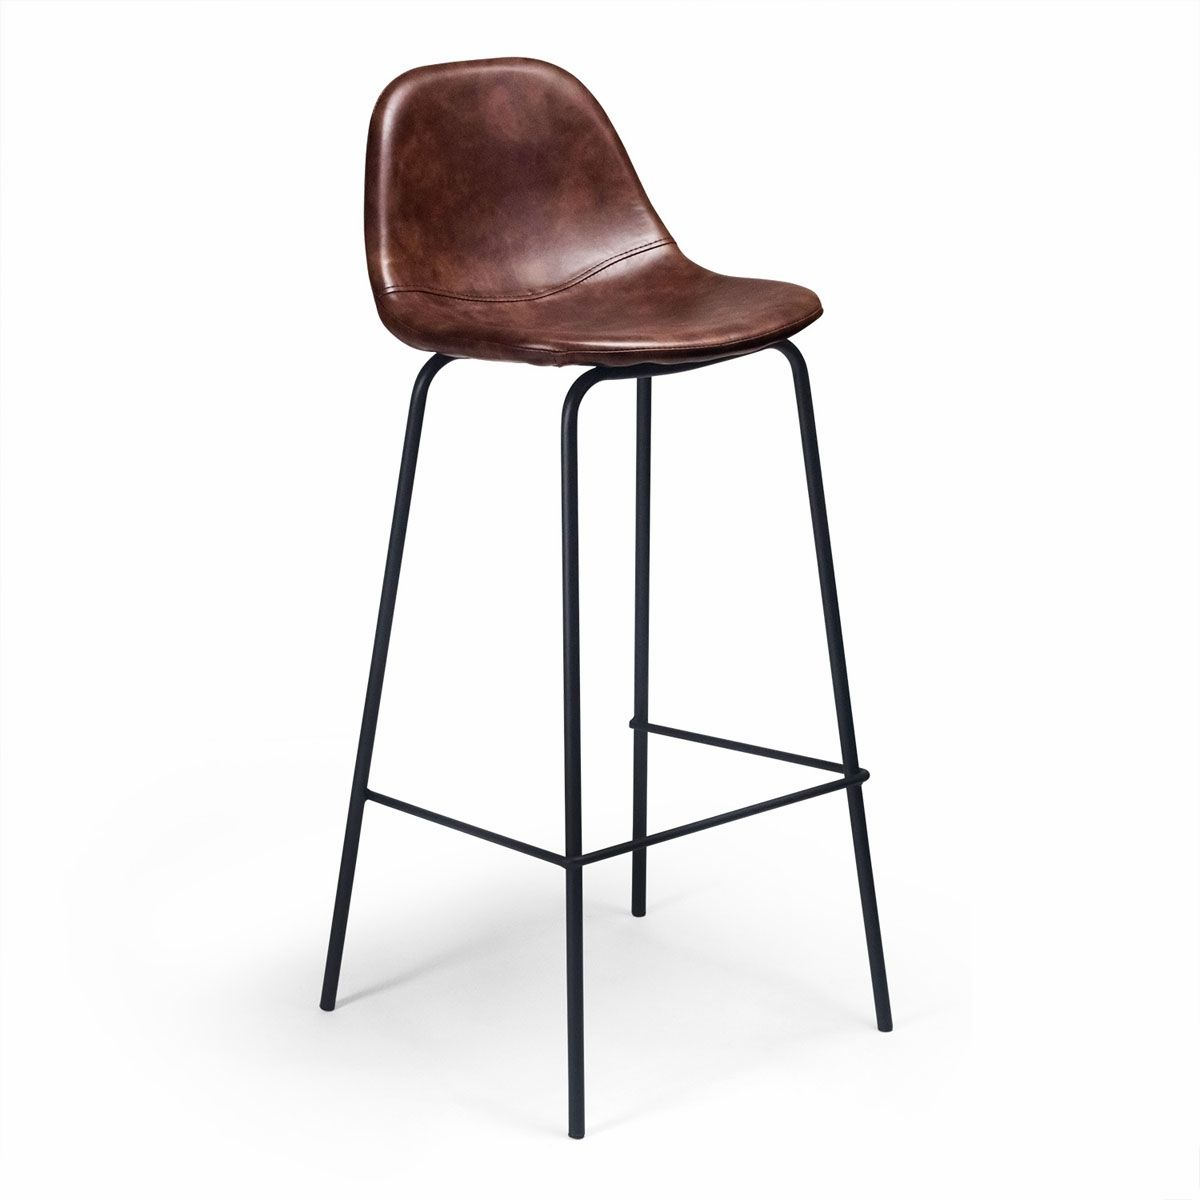 Sigfred Barstool Leather Bar Stools Leather Counter